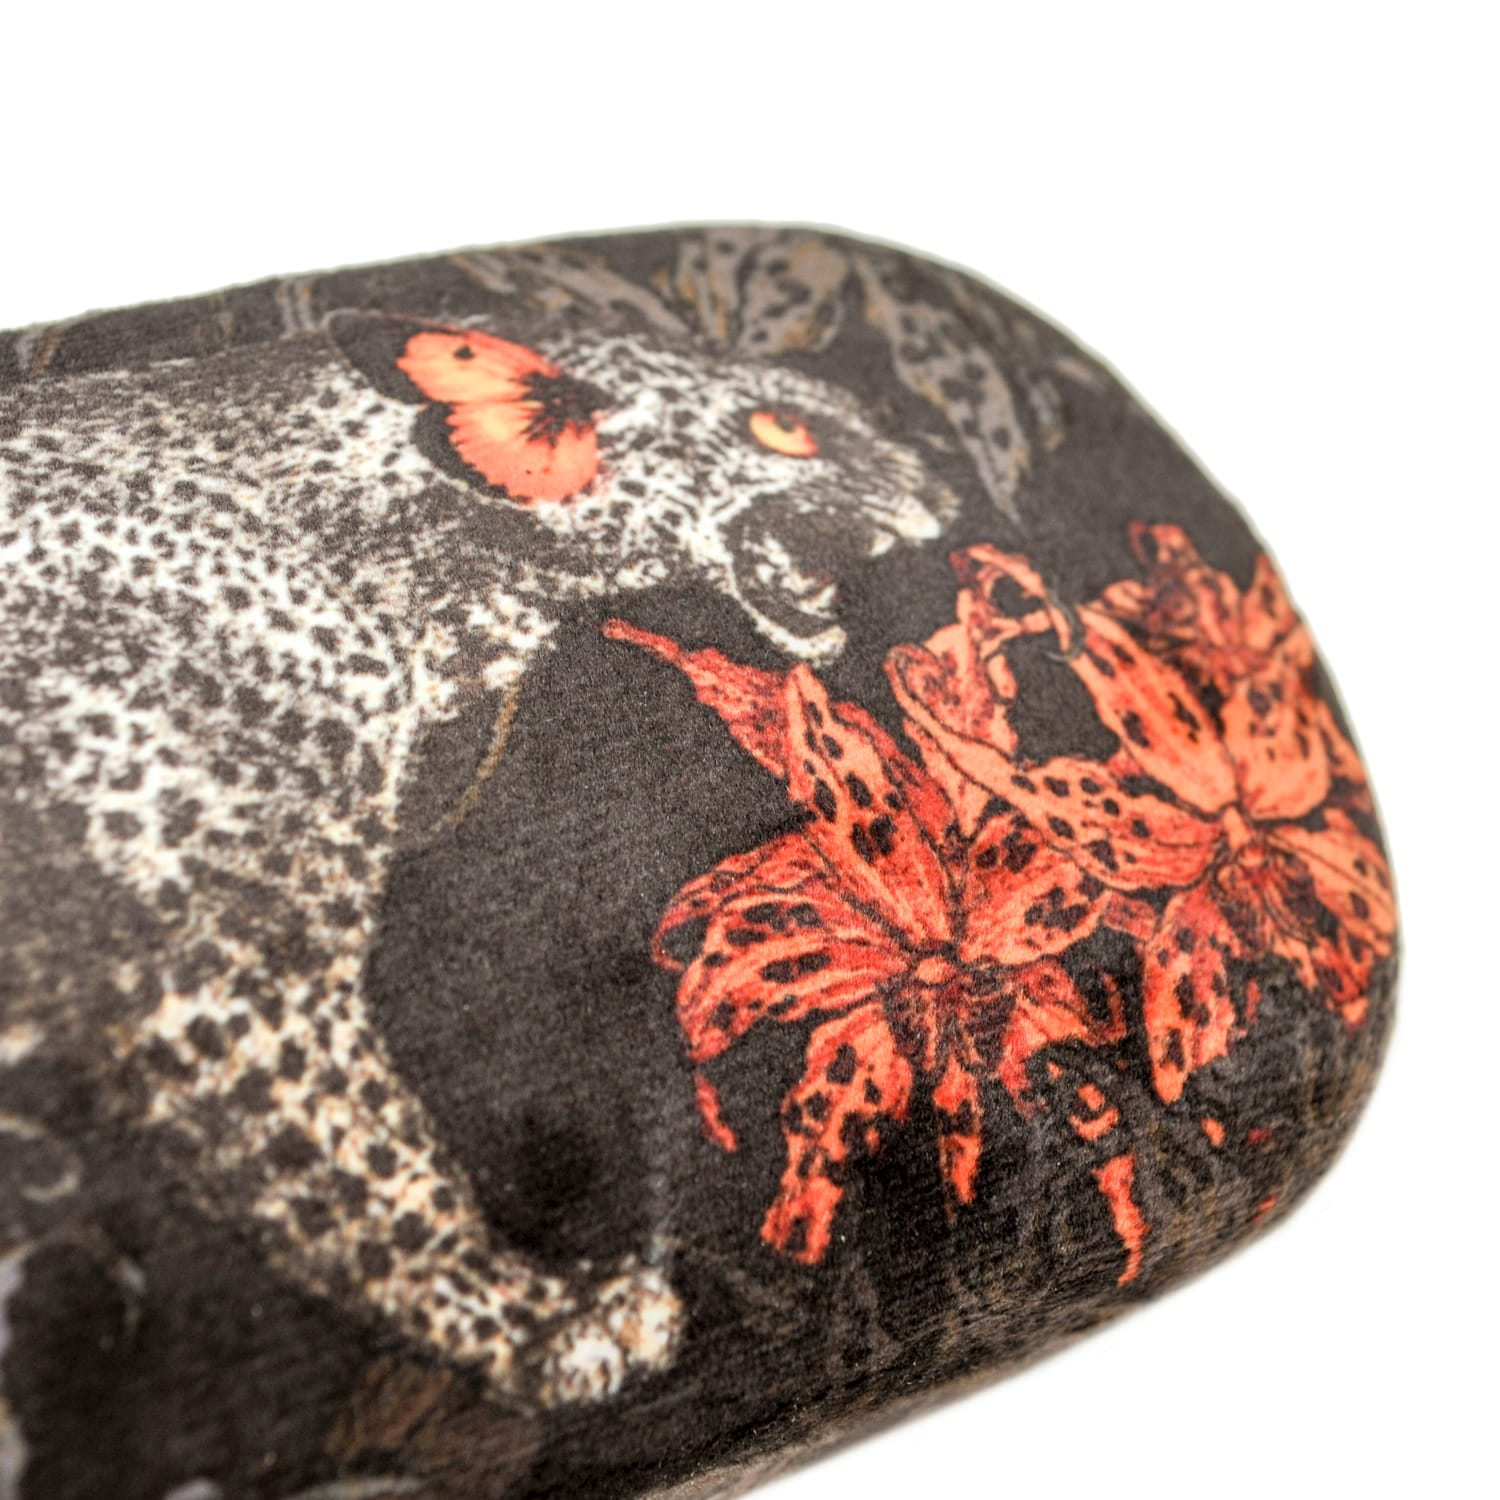 Santorus 'Leopard' Glasses Case